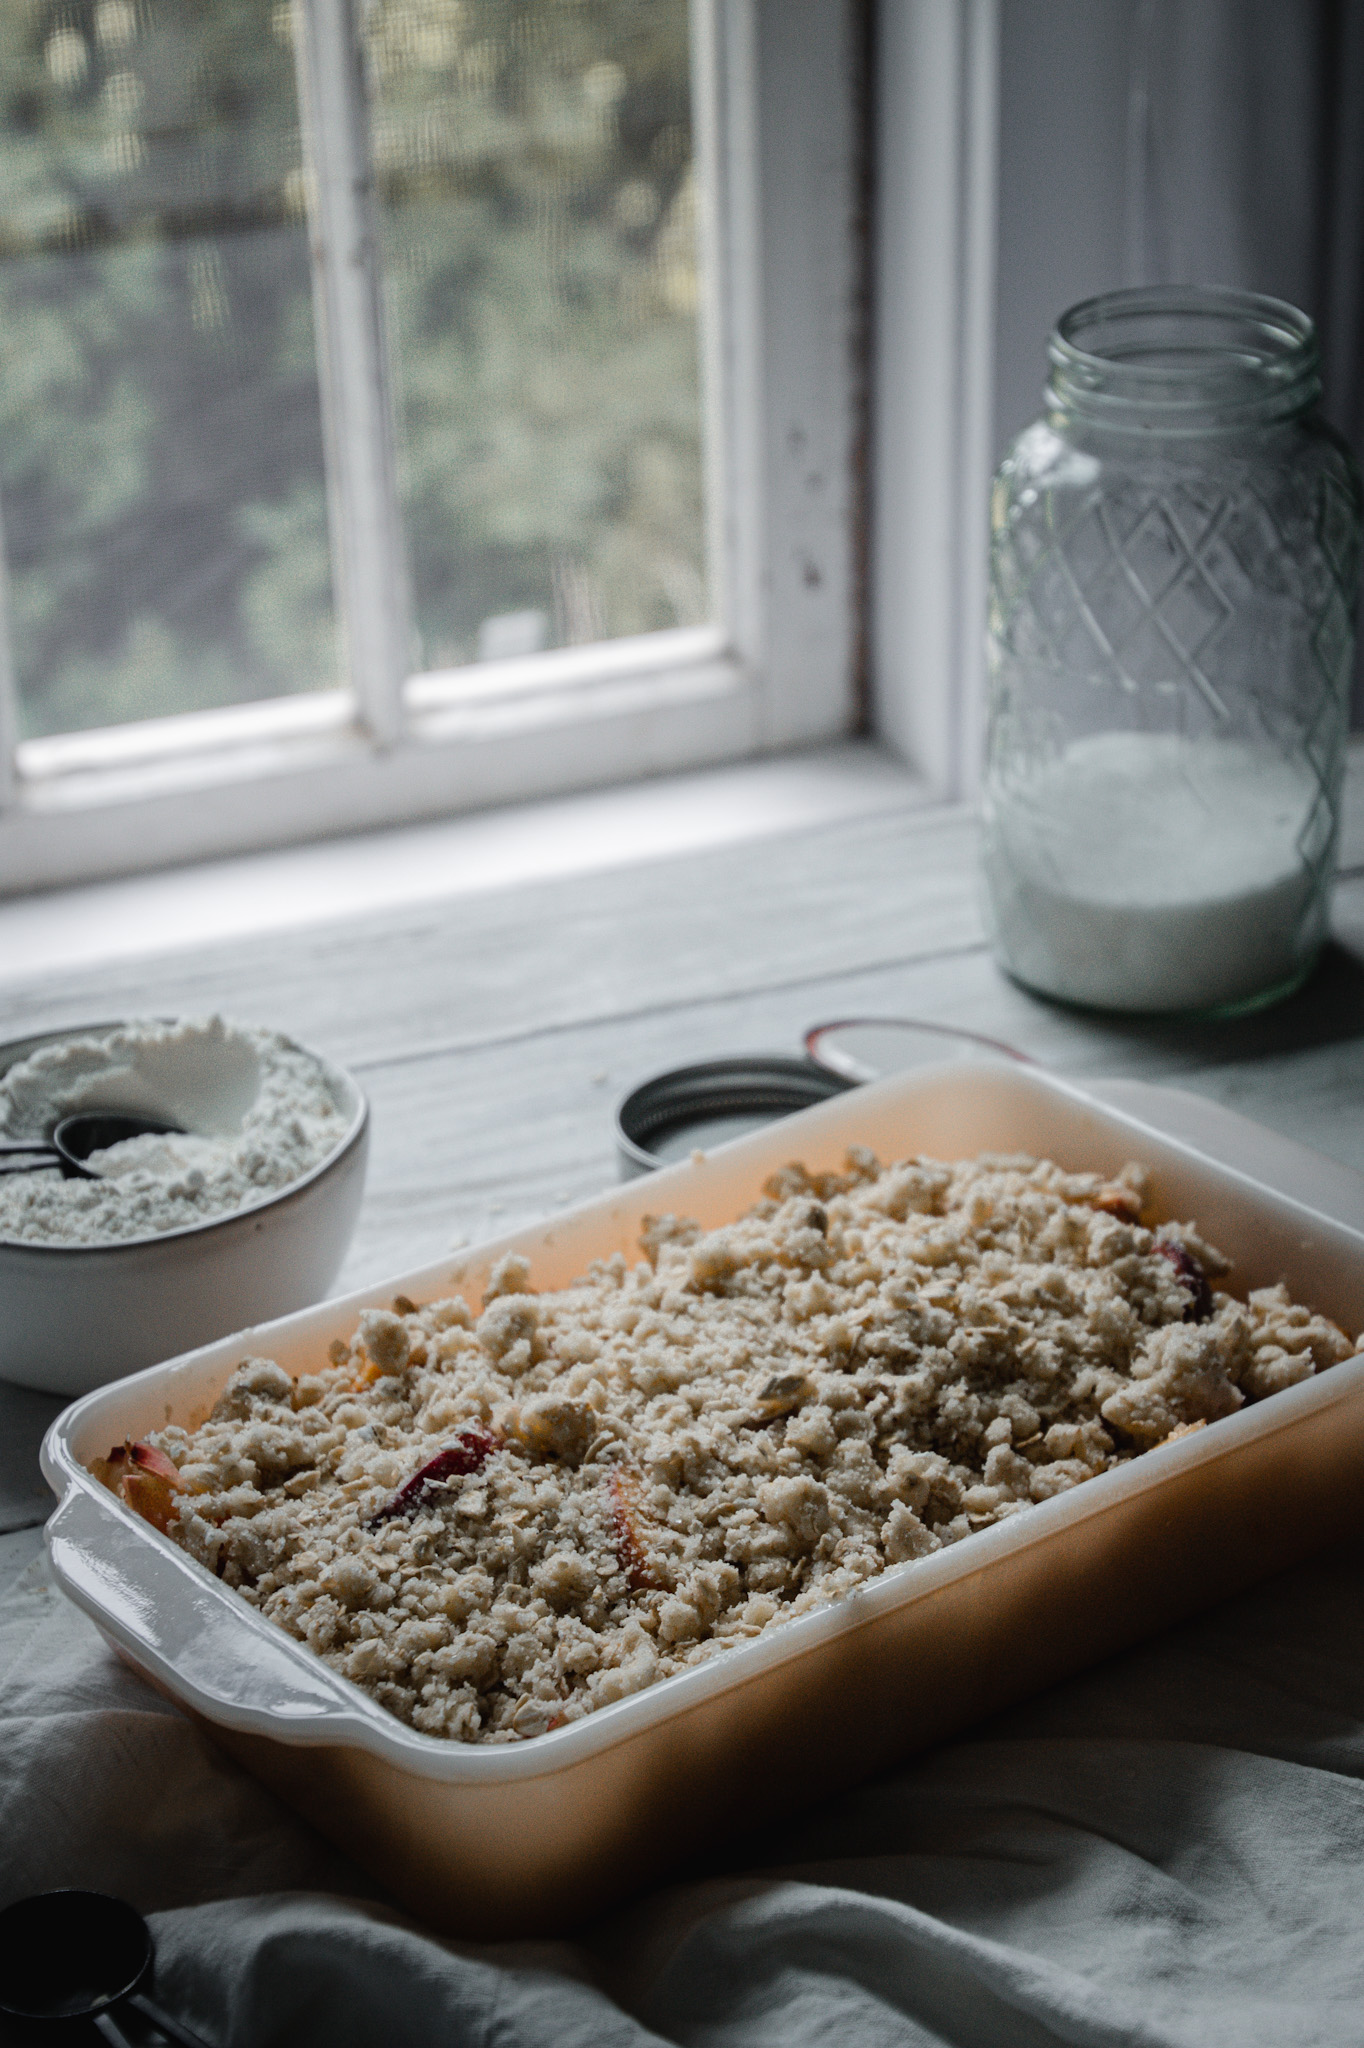 peach crisp ready to be baked or grilled - A Messy Bun Kitchen